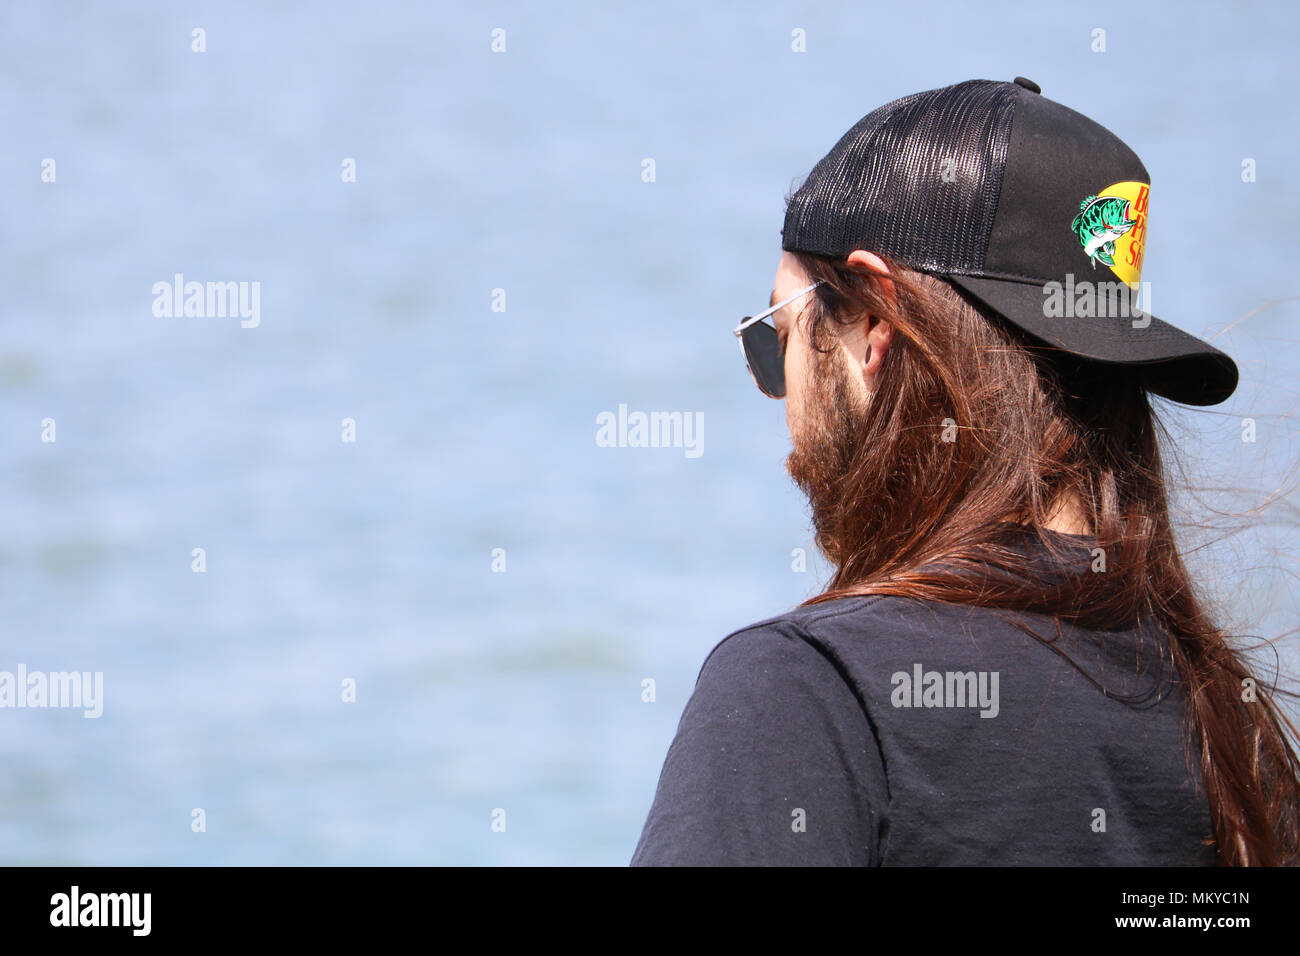 Young man with very long straight hair and beard wearing a baseball cap  from Bass Pro Shop. He is wearing the cap backwards. 1f1f88e97d3